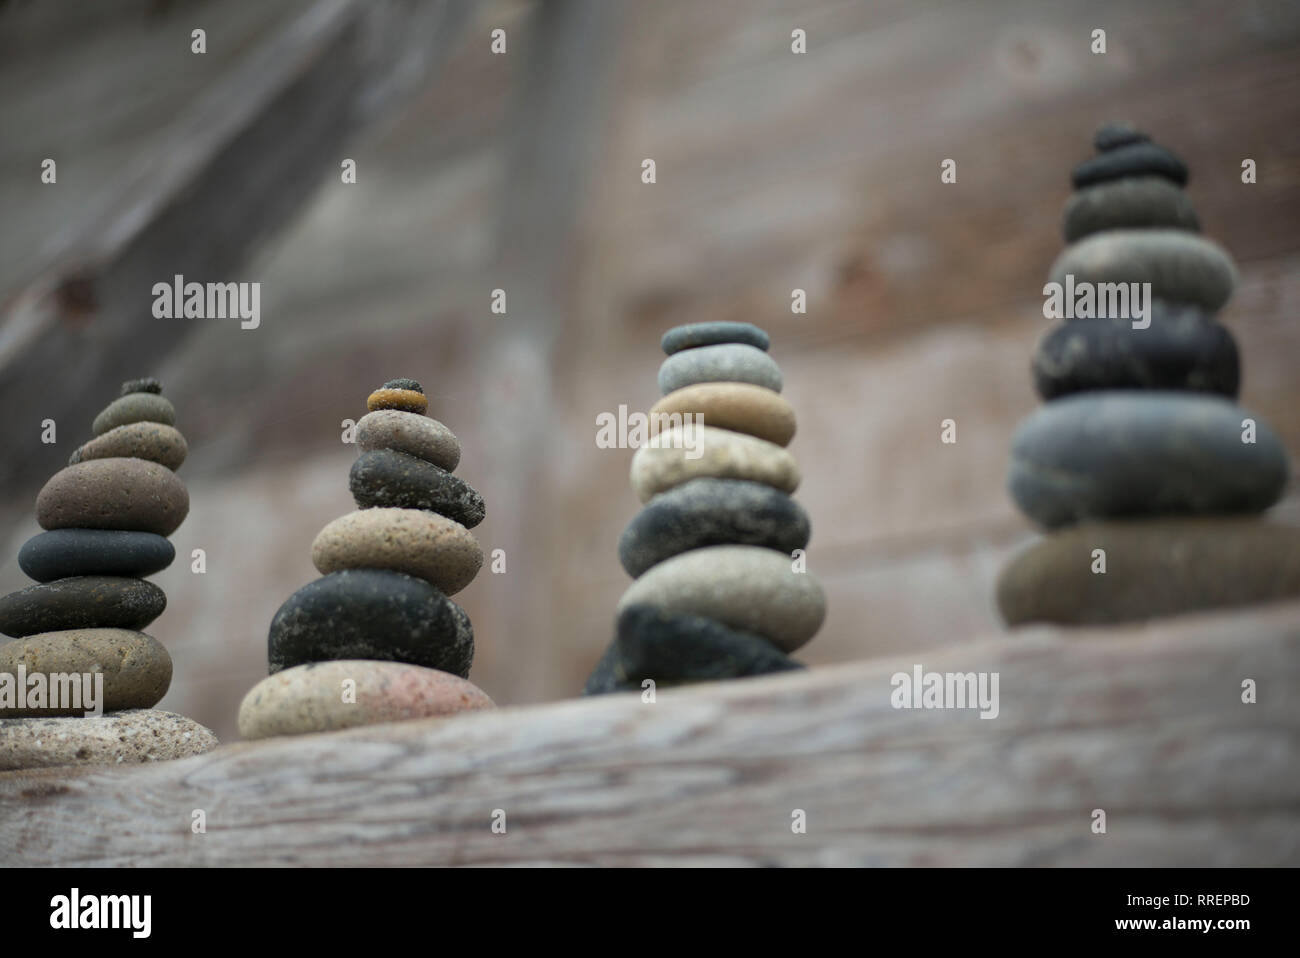 Stacked stones at the beach, Spiritual concept - Stock Image